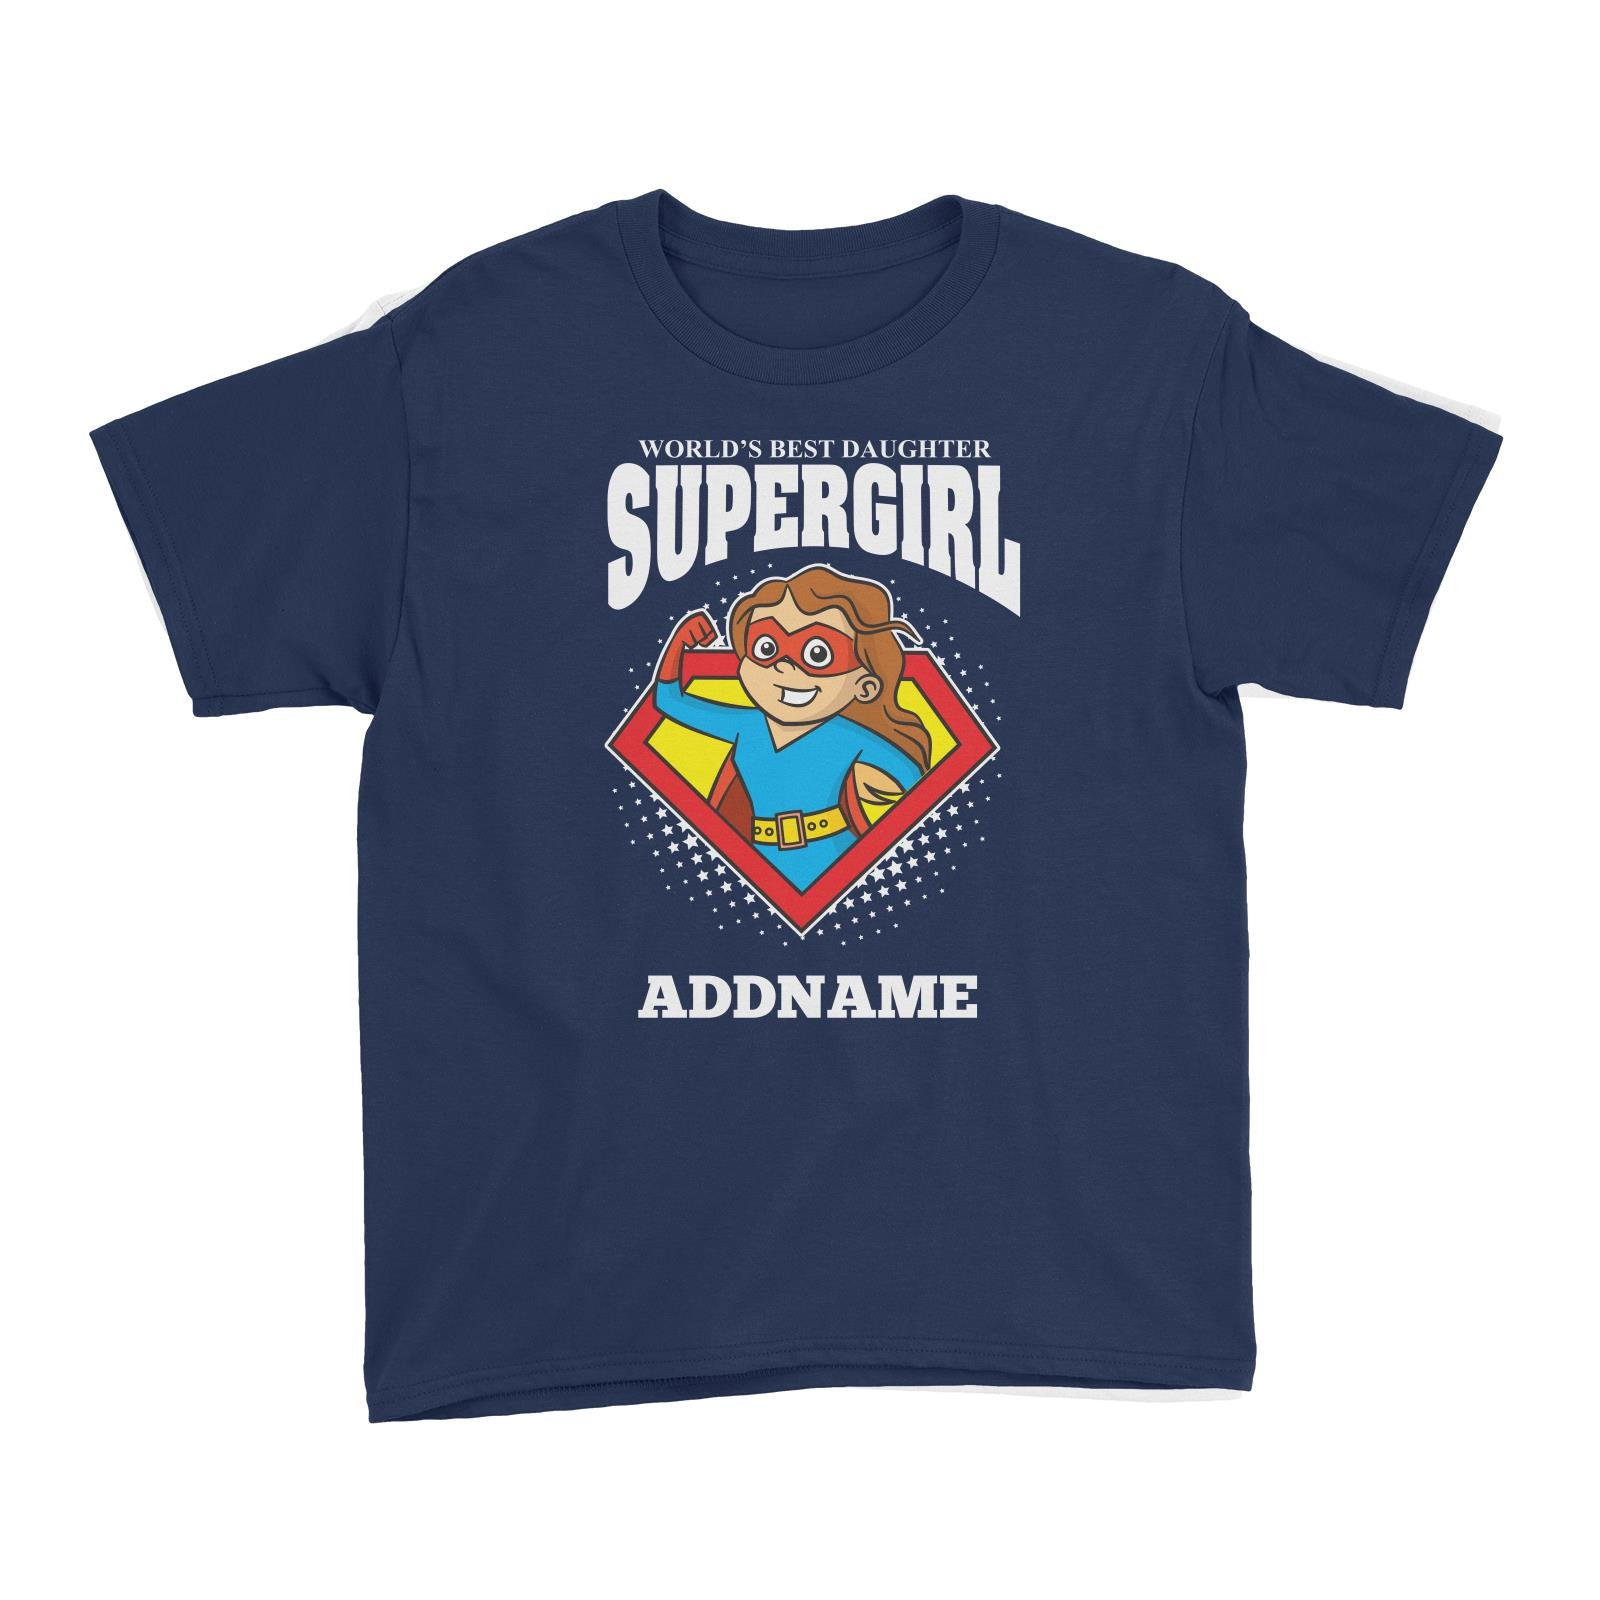 Best Daughter Supergirl Girl Kid's T-Shirt Personalizable Designs Matching Family Superhero Family Edition Superhero